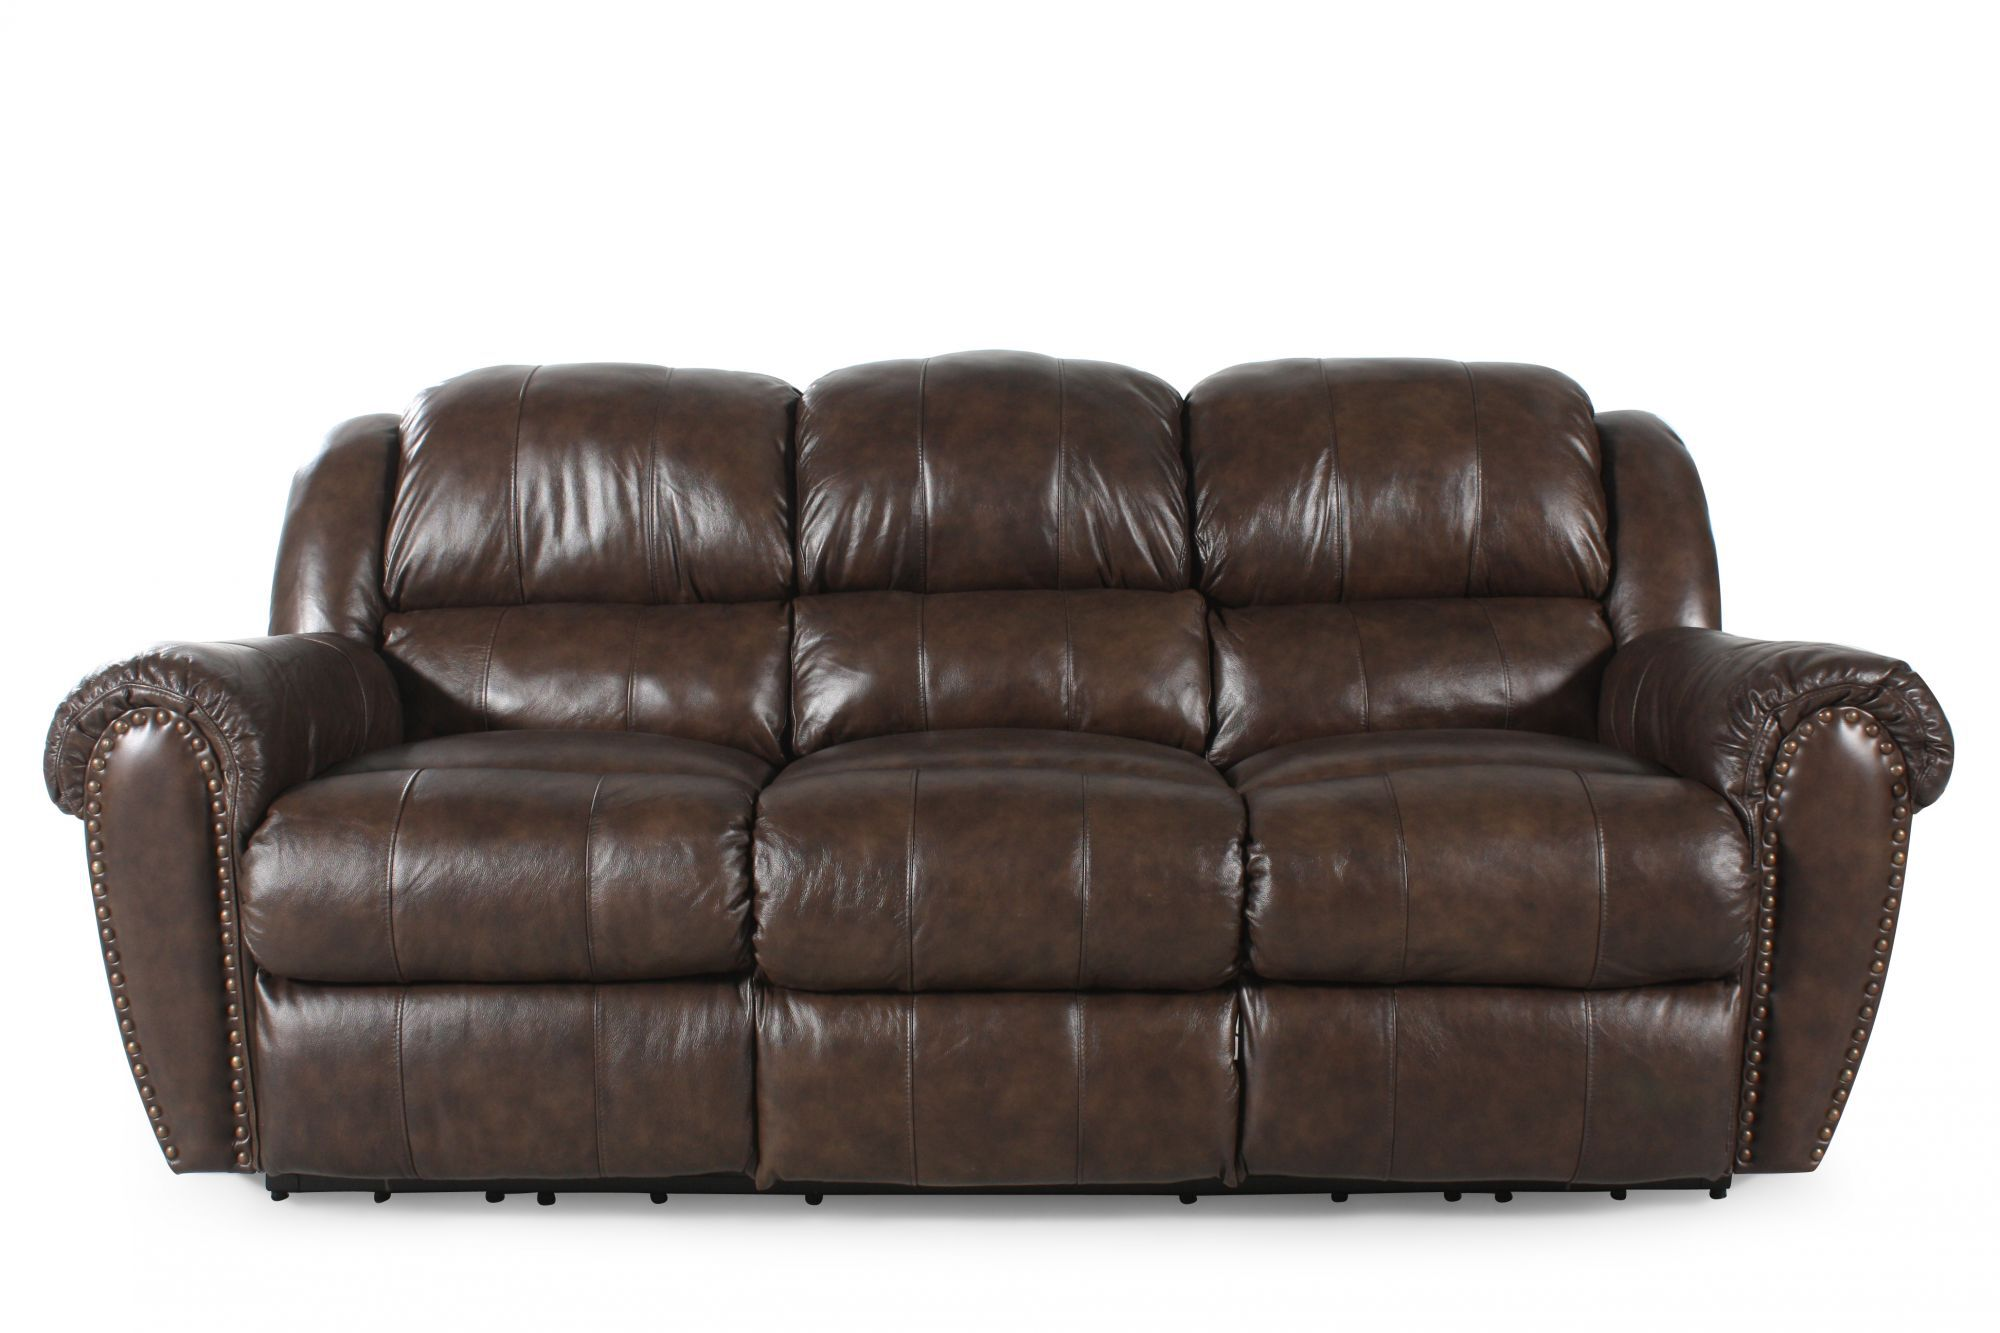 lane triple reclining sofa thomasville leather summerlin mathis brothers furniture